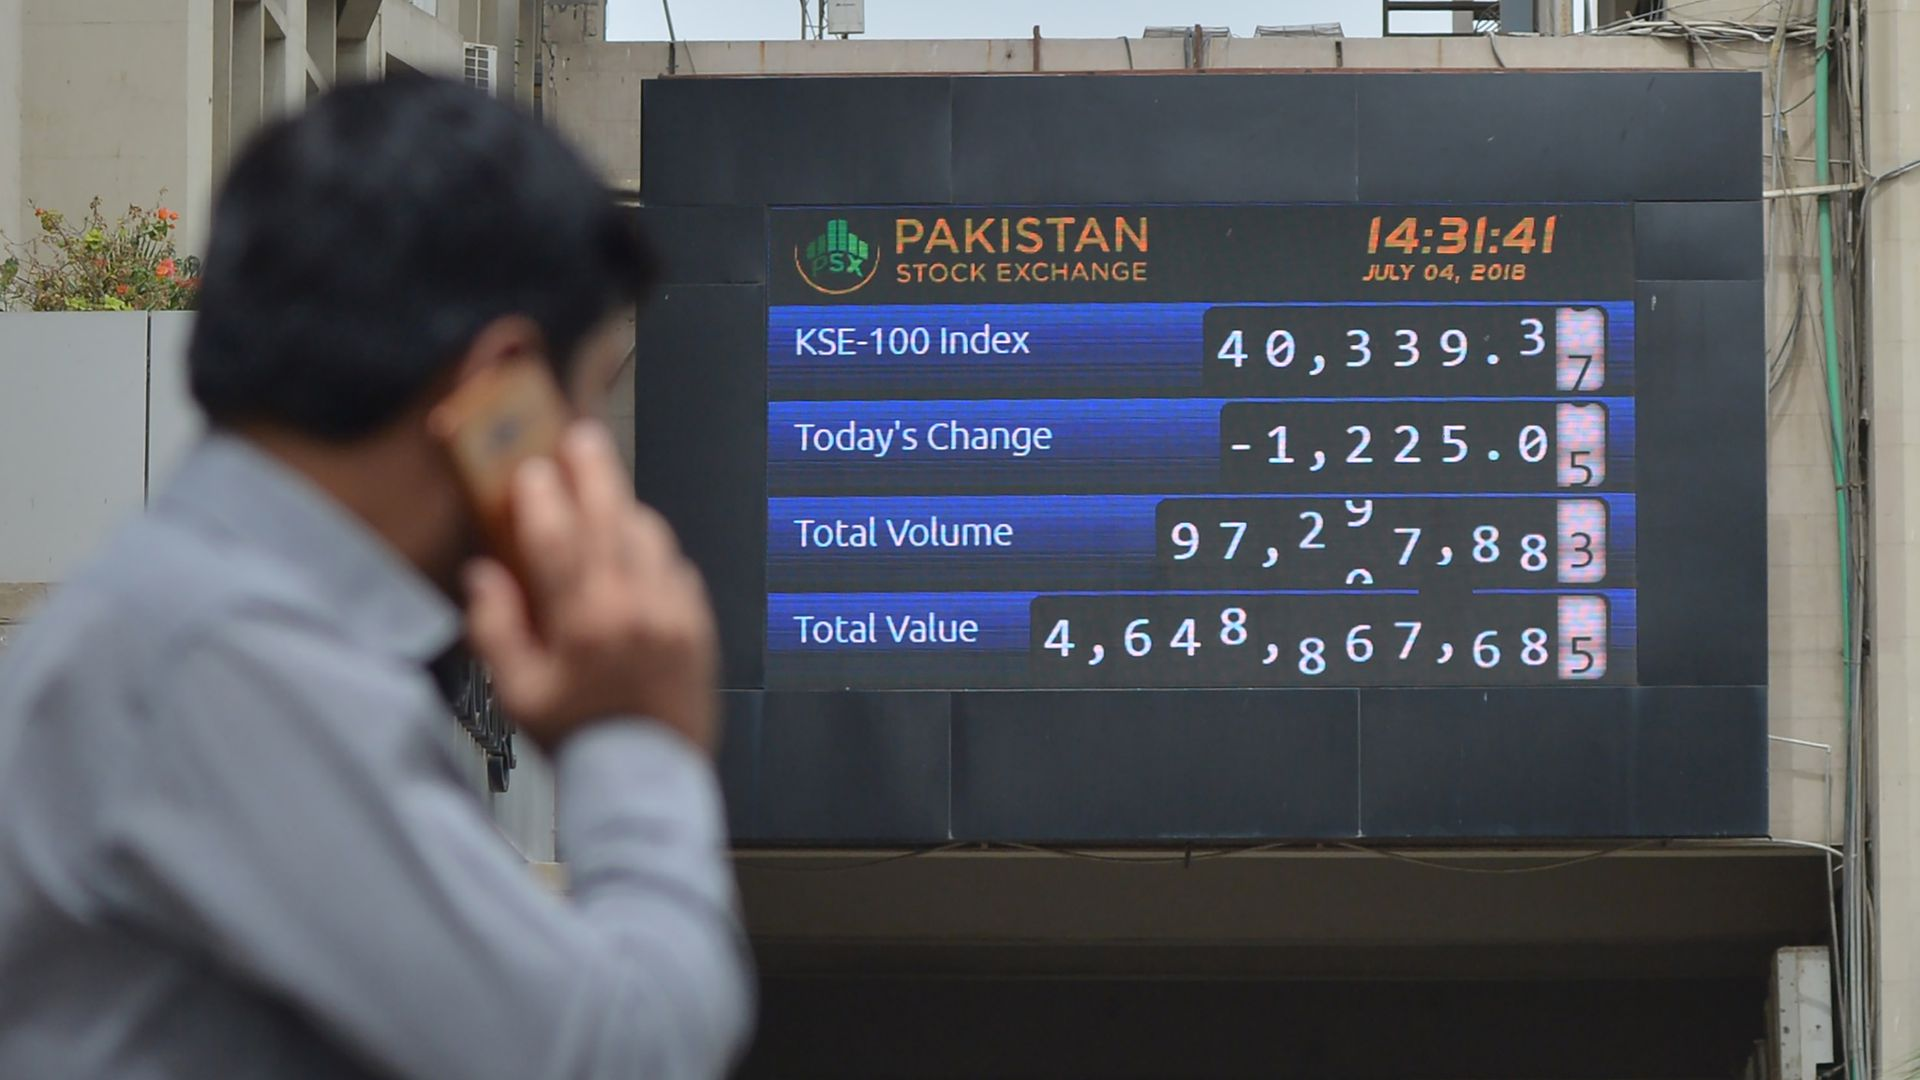 A Pakistani stockbroker looks at an index board during a trading session at the Pakistan Stock Exchange